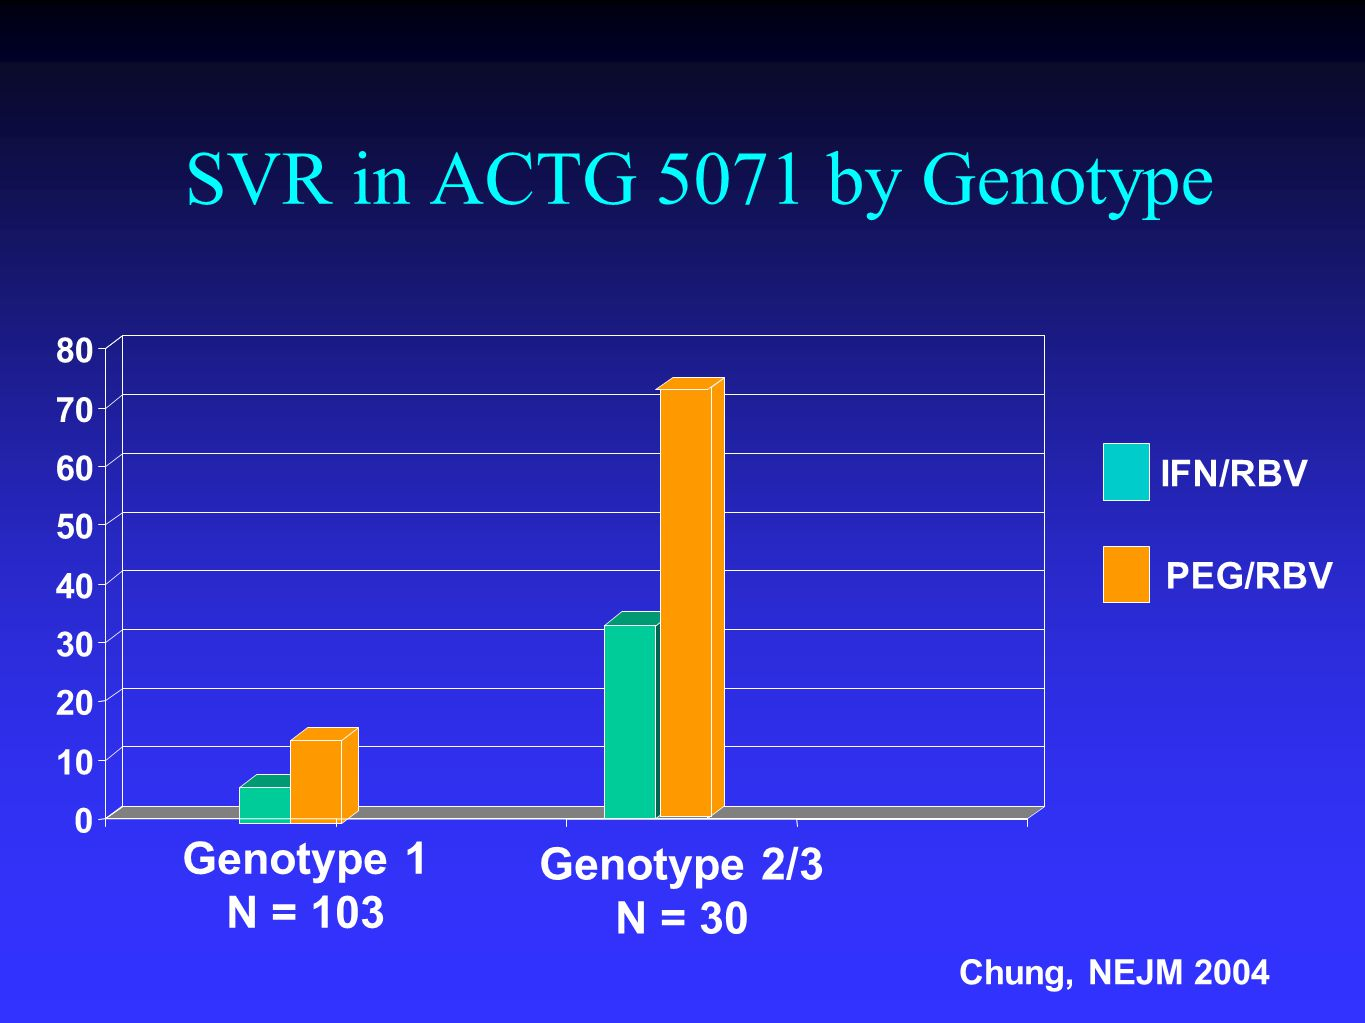 SVR in ACTG 5071 by Genotype 0 10 20 30 40 50 60 70 80 Genotype 1 N = 103 Genotype 2/3 N = 30 IFN/RBV PEG/RBV Chung, NEJM 2004